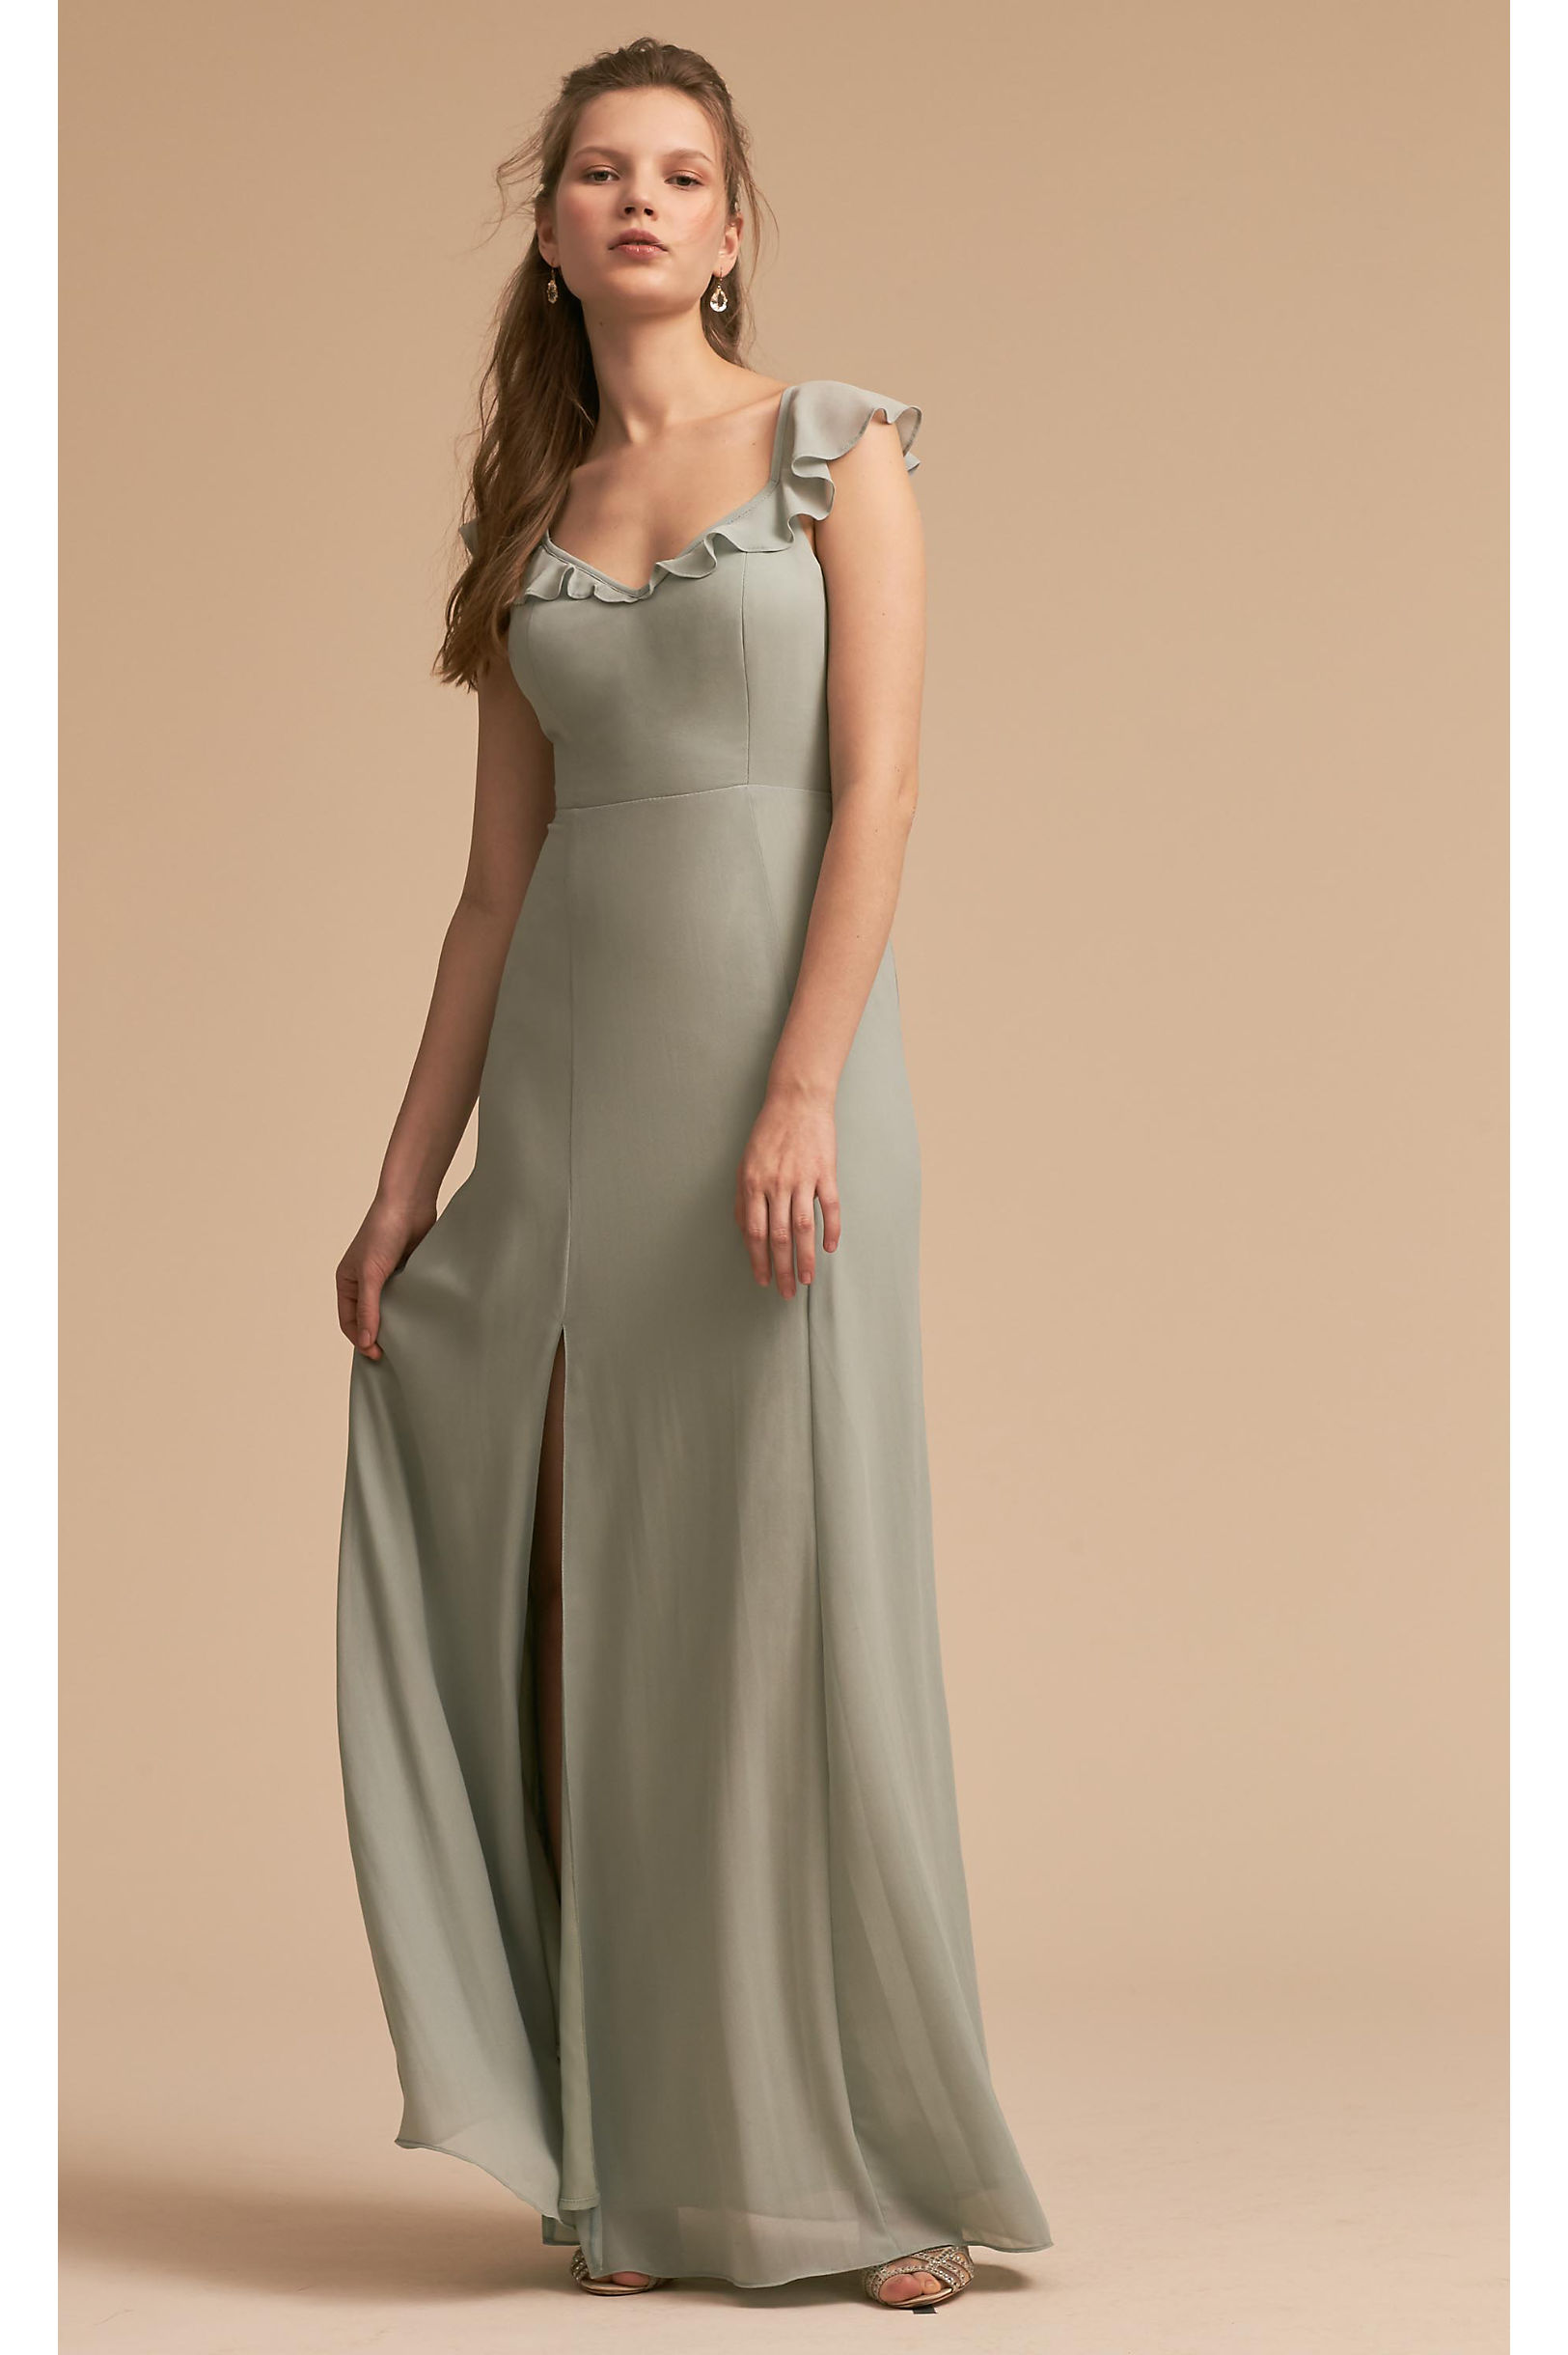 Boho Bridesmaid Dresses | BHLDN